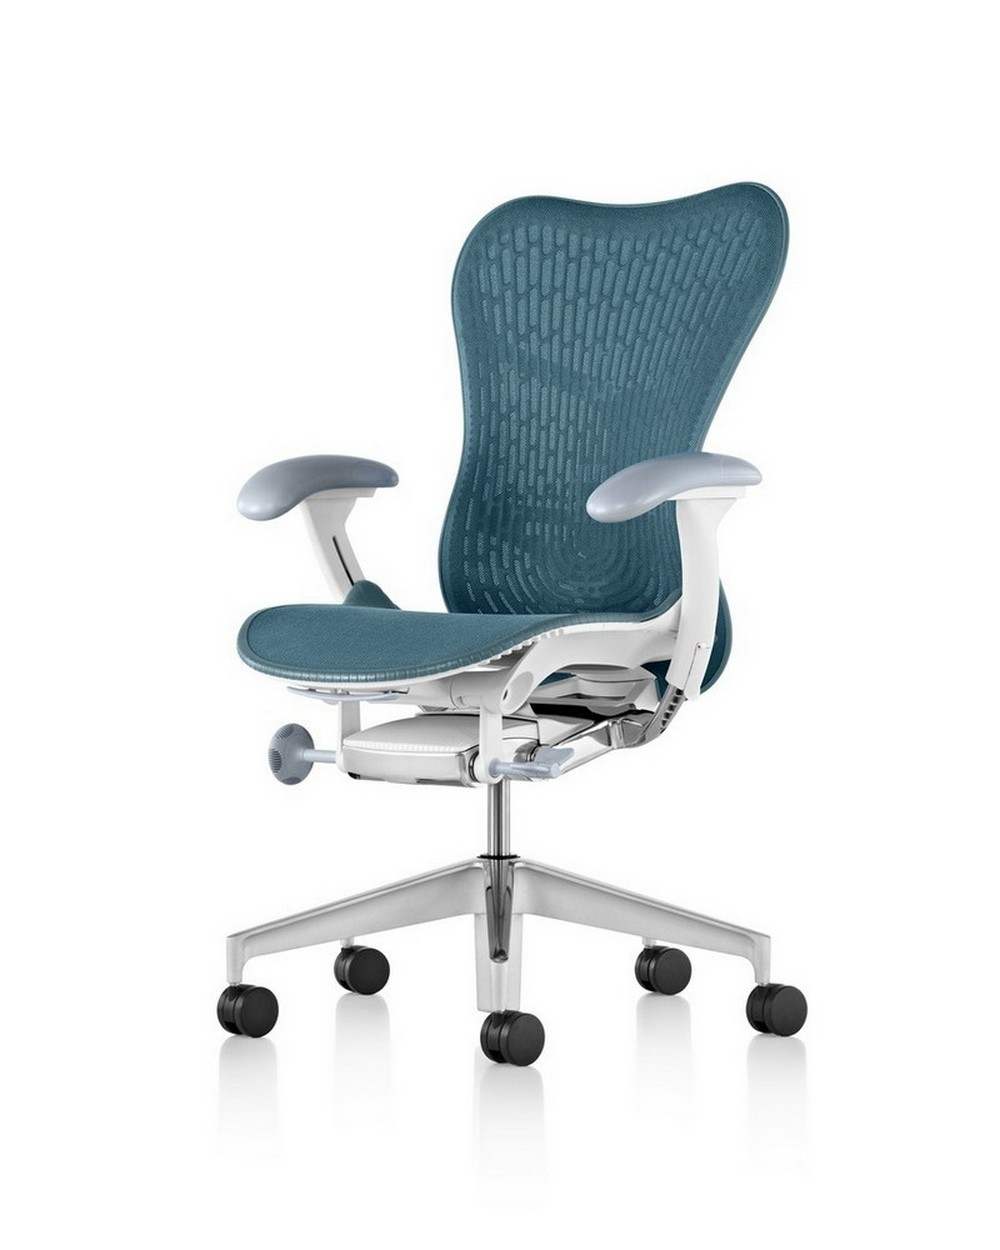 interior designers See some Top Products from great Interior Designers in the USA Herman Miller